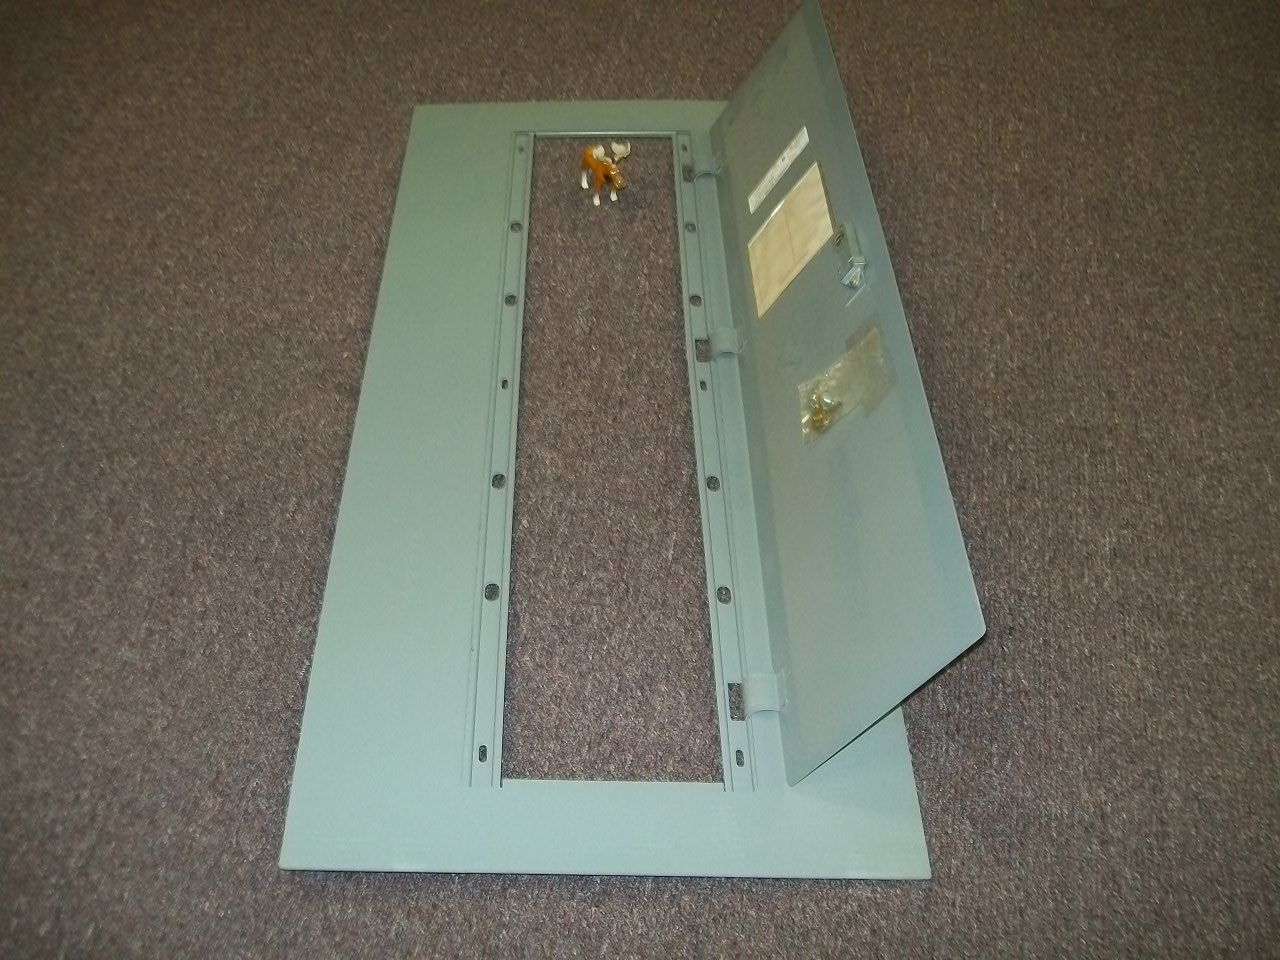 "Primary image for Square D MHC47F Panel Board Cover / Trim for NQOD Load Center 48 1/2"" X 21 1/2"""